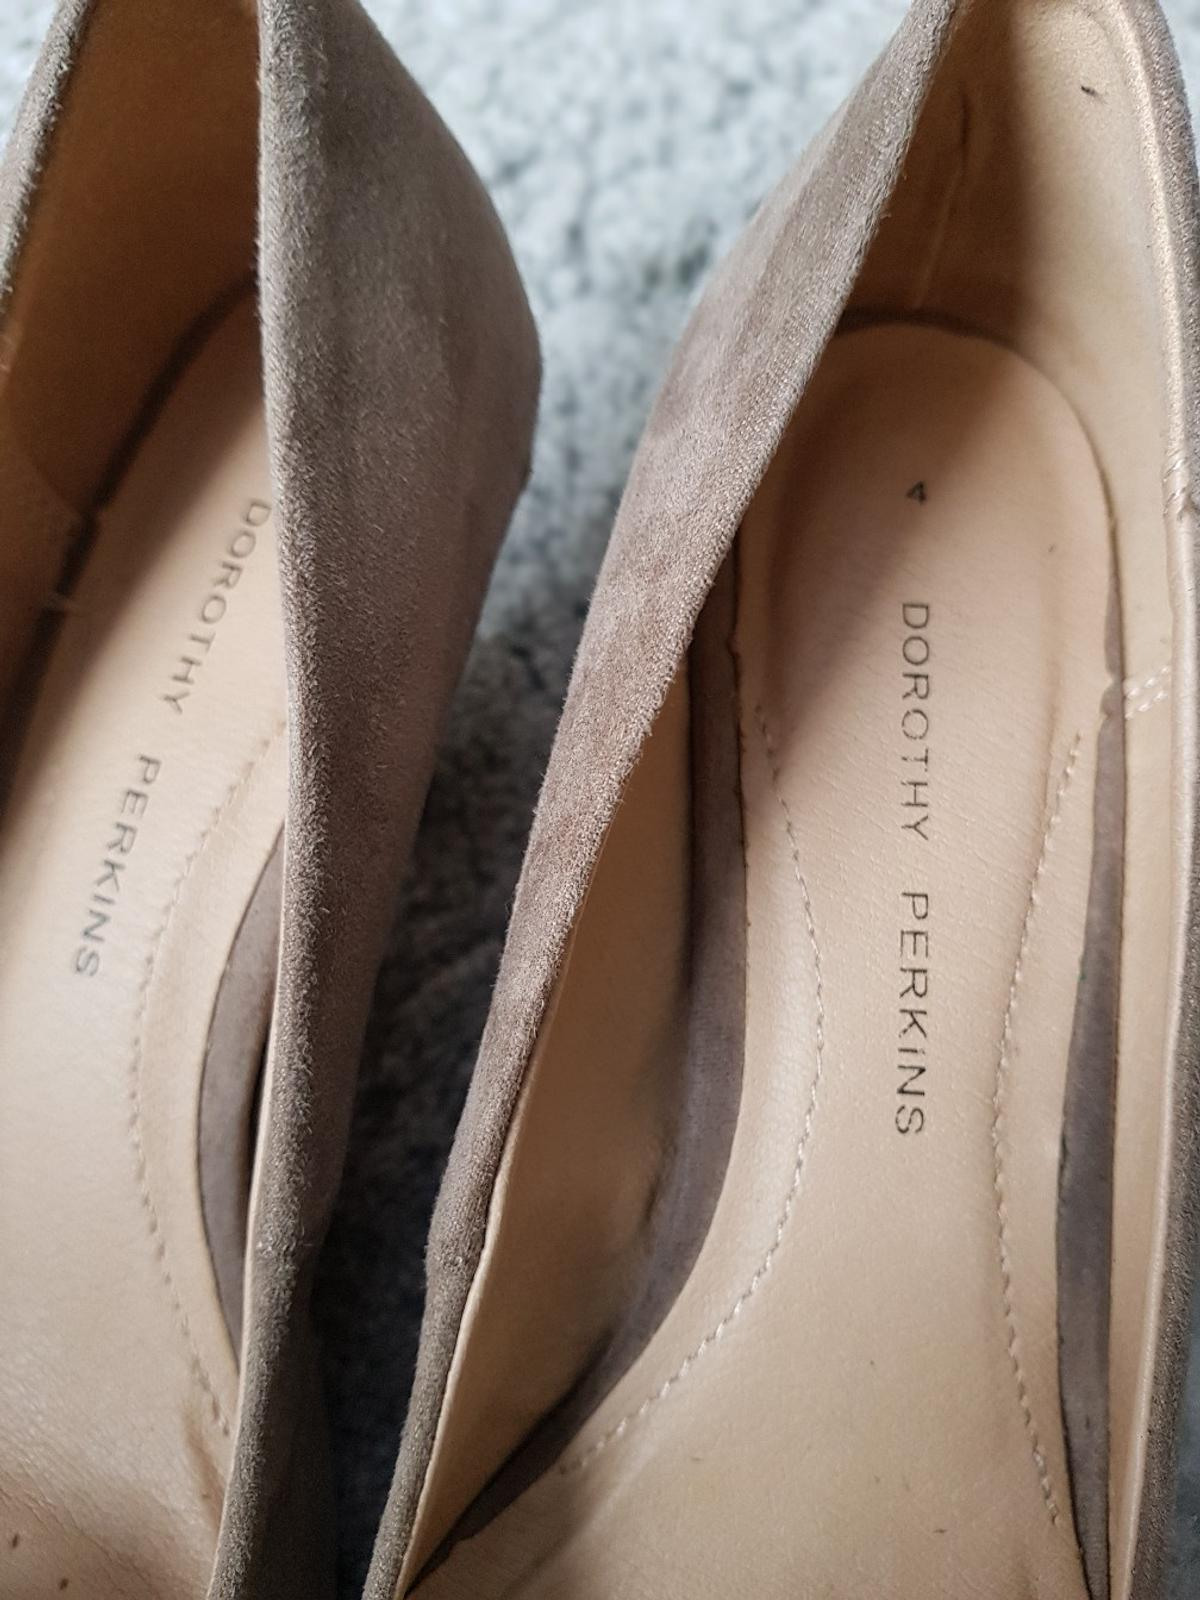 Used only once so in very good condition Size 4 Collection from Birkby Huddersfield